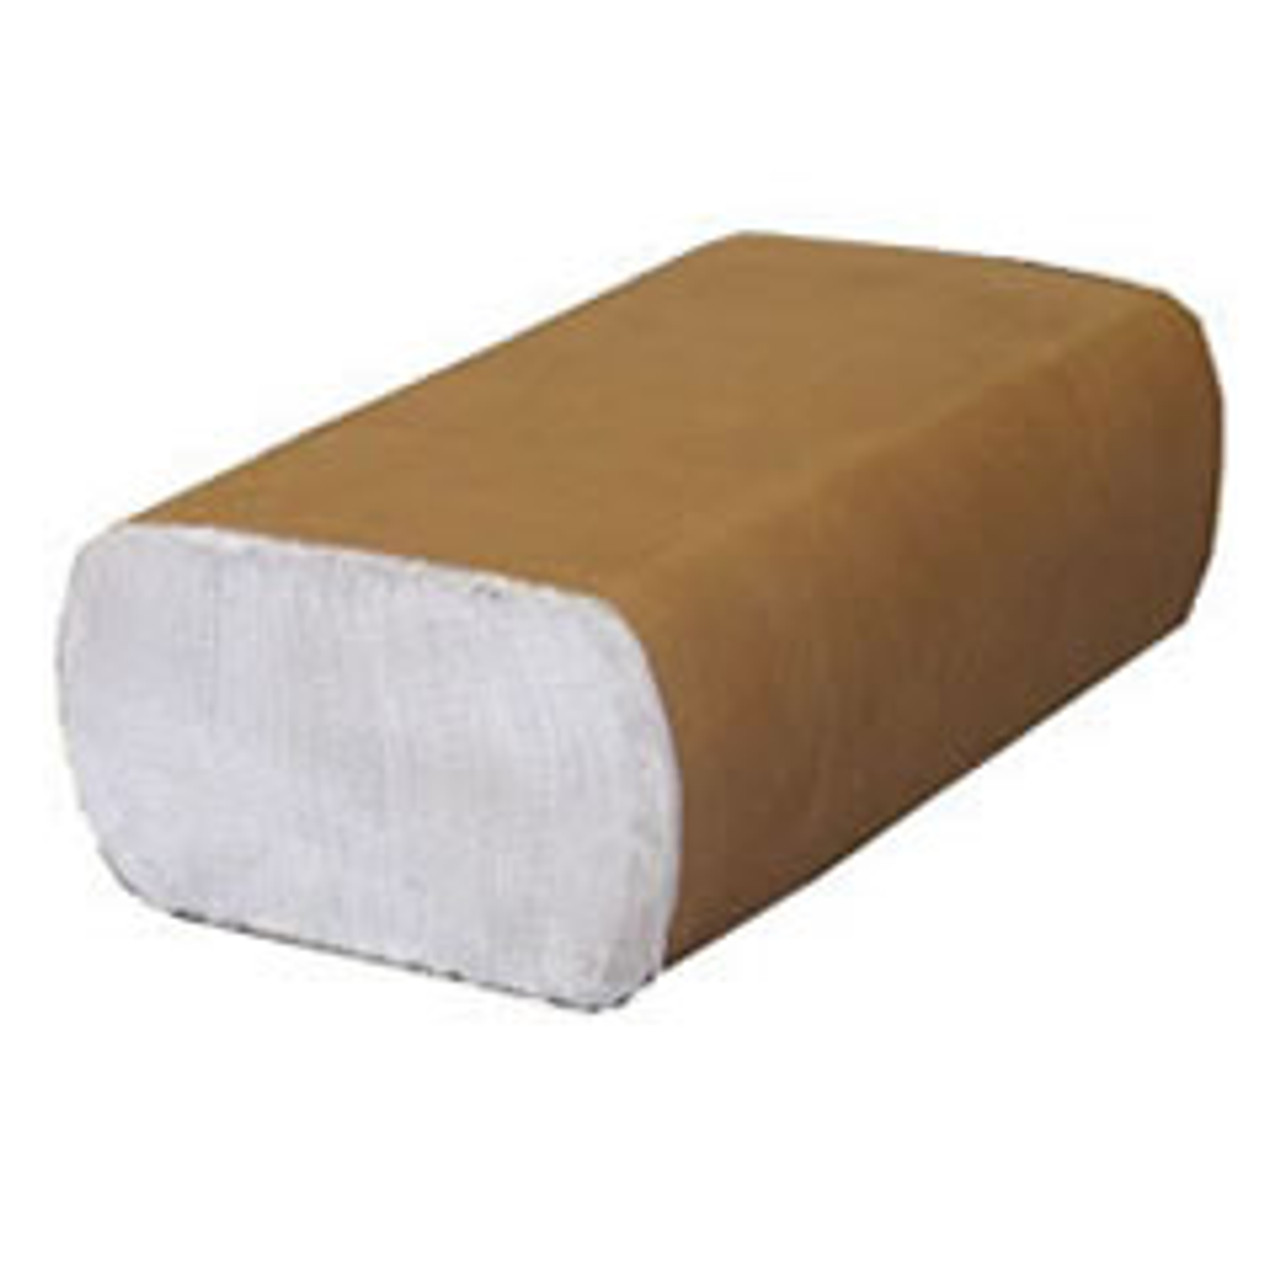 Multi-fold 8.5 x 9 High quality, value priced paper towel ideal for all public environments.